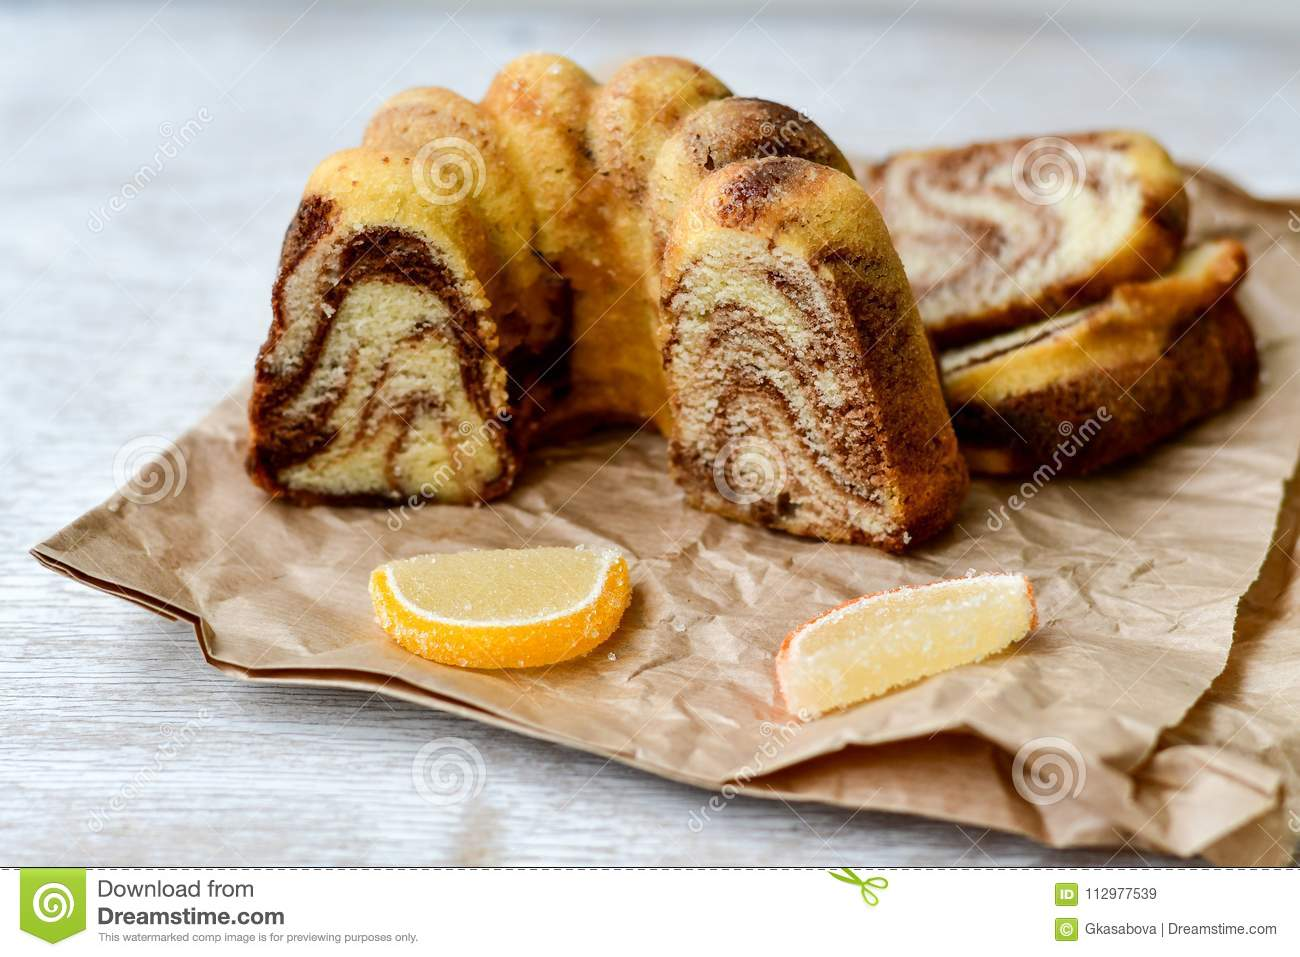 Bundt marble cake, and lemon slices